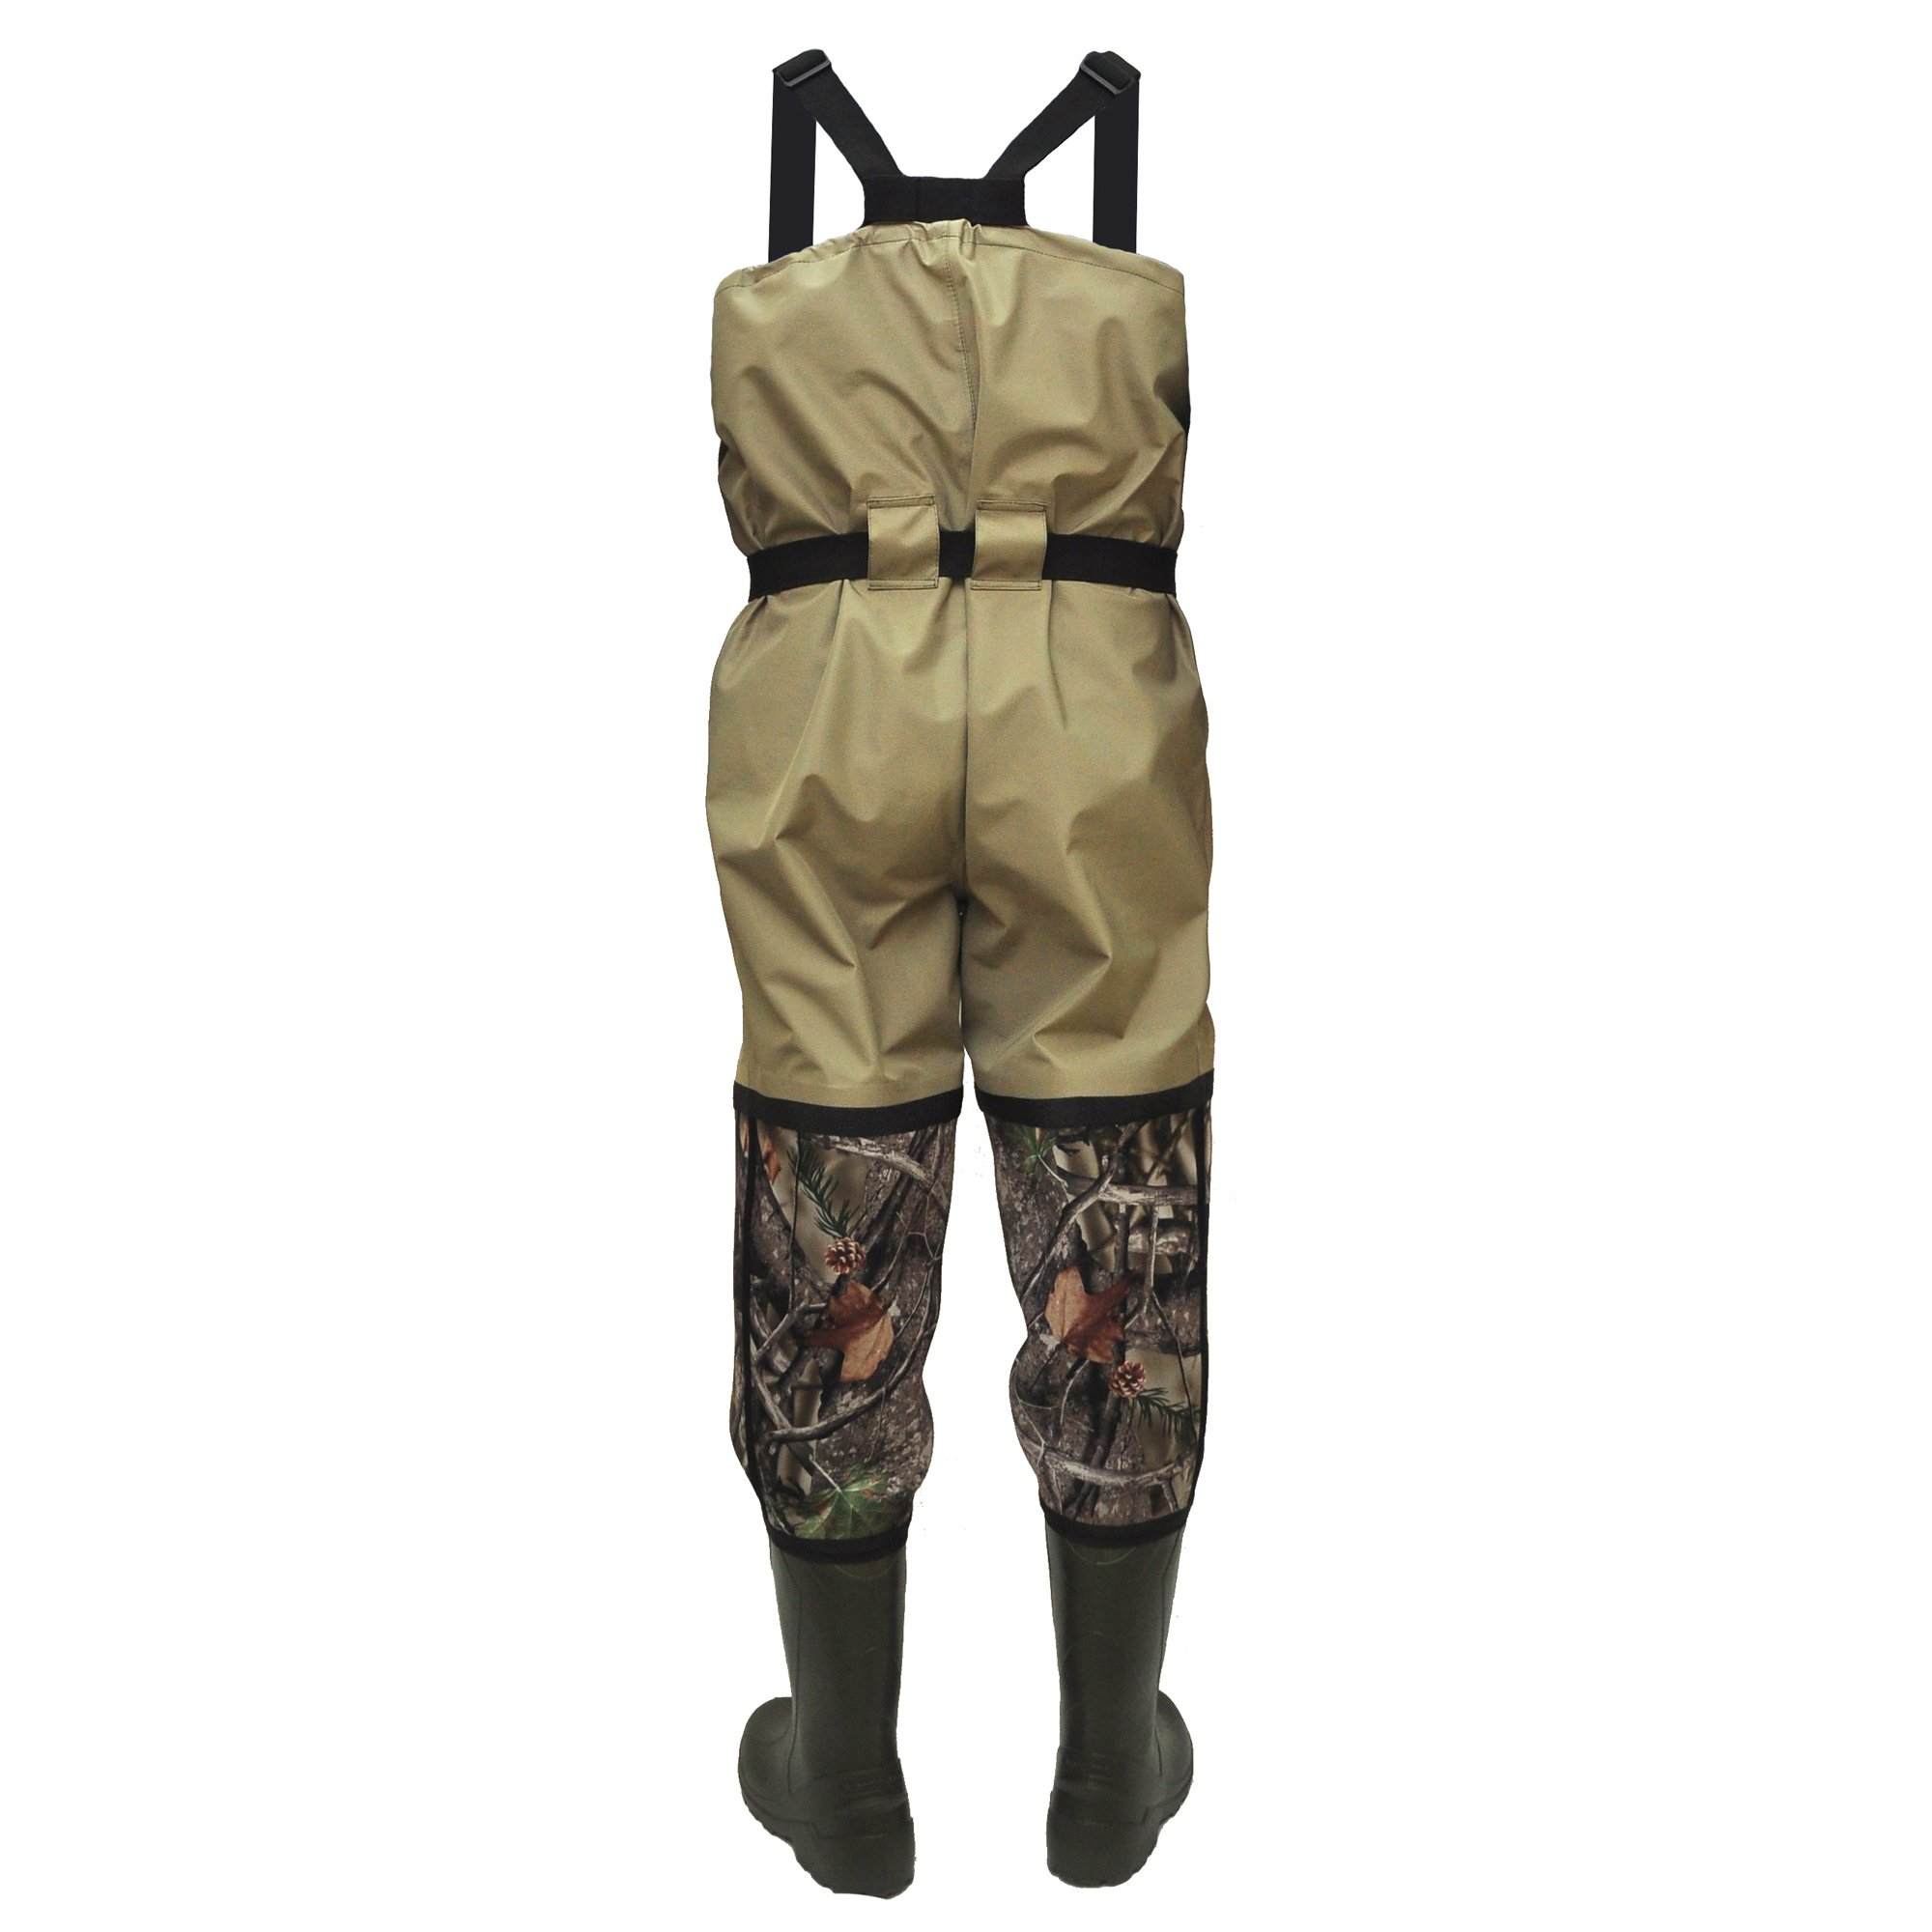 Overalls Nordman Fishing EVA Energy Chest Waders Membrane and Neoprene PE-22 PK RNE MB